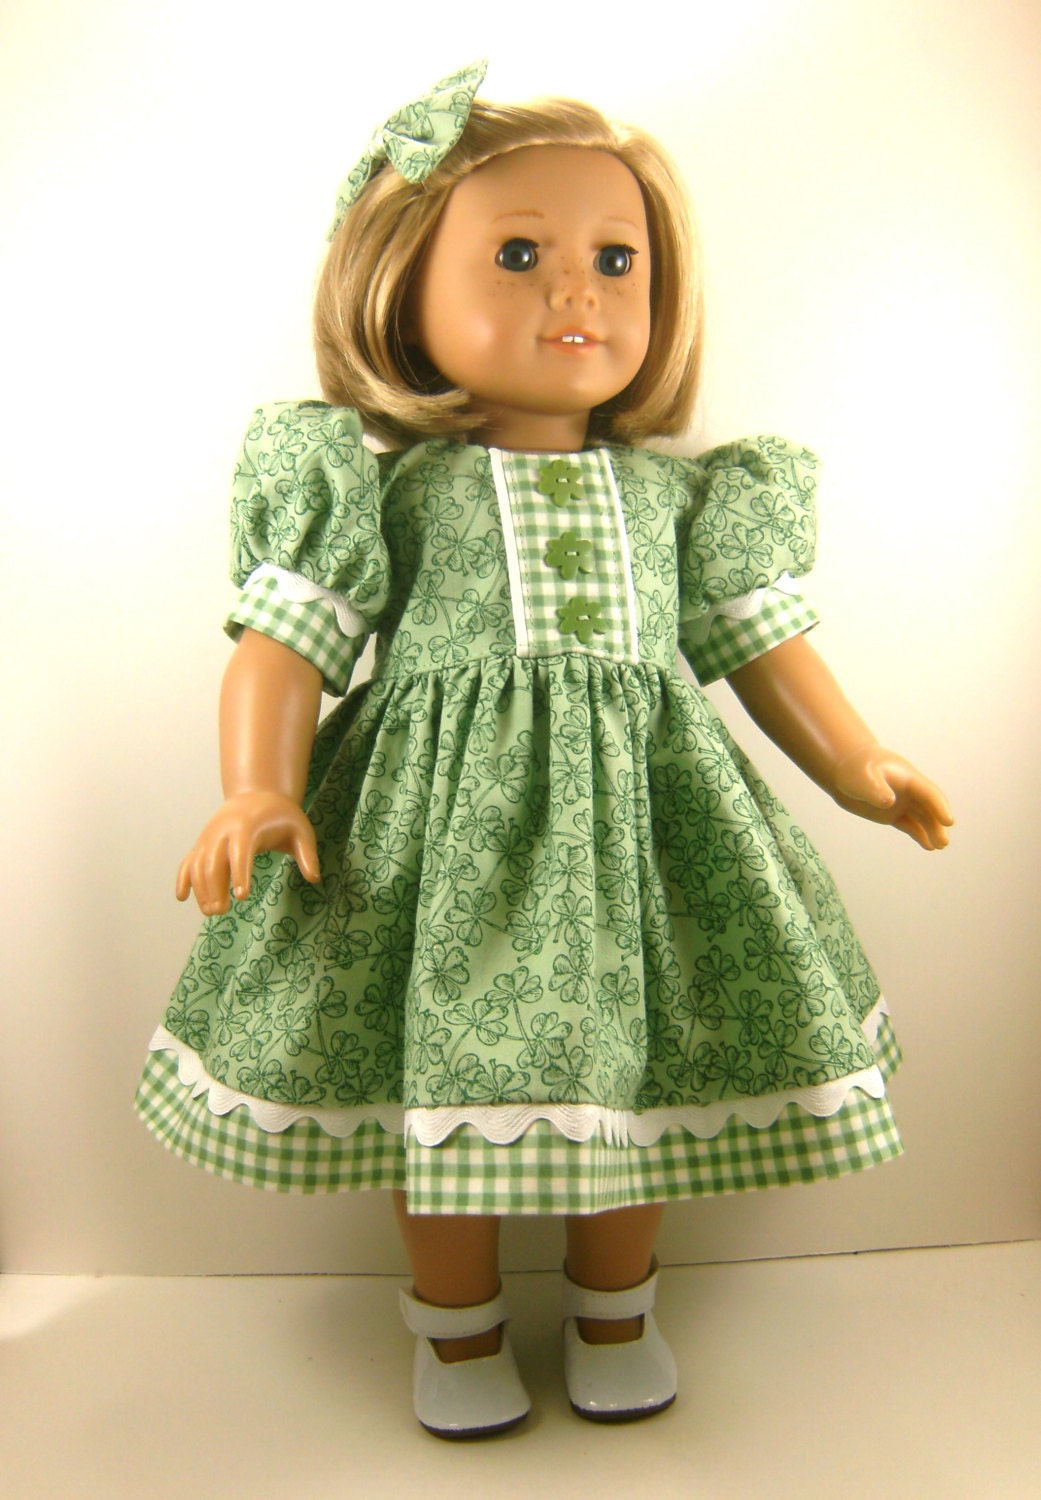 American girl doll 18 inch dolls st patrick 39 s day short for Garden tools for 18 inch doll